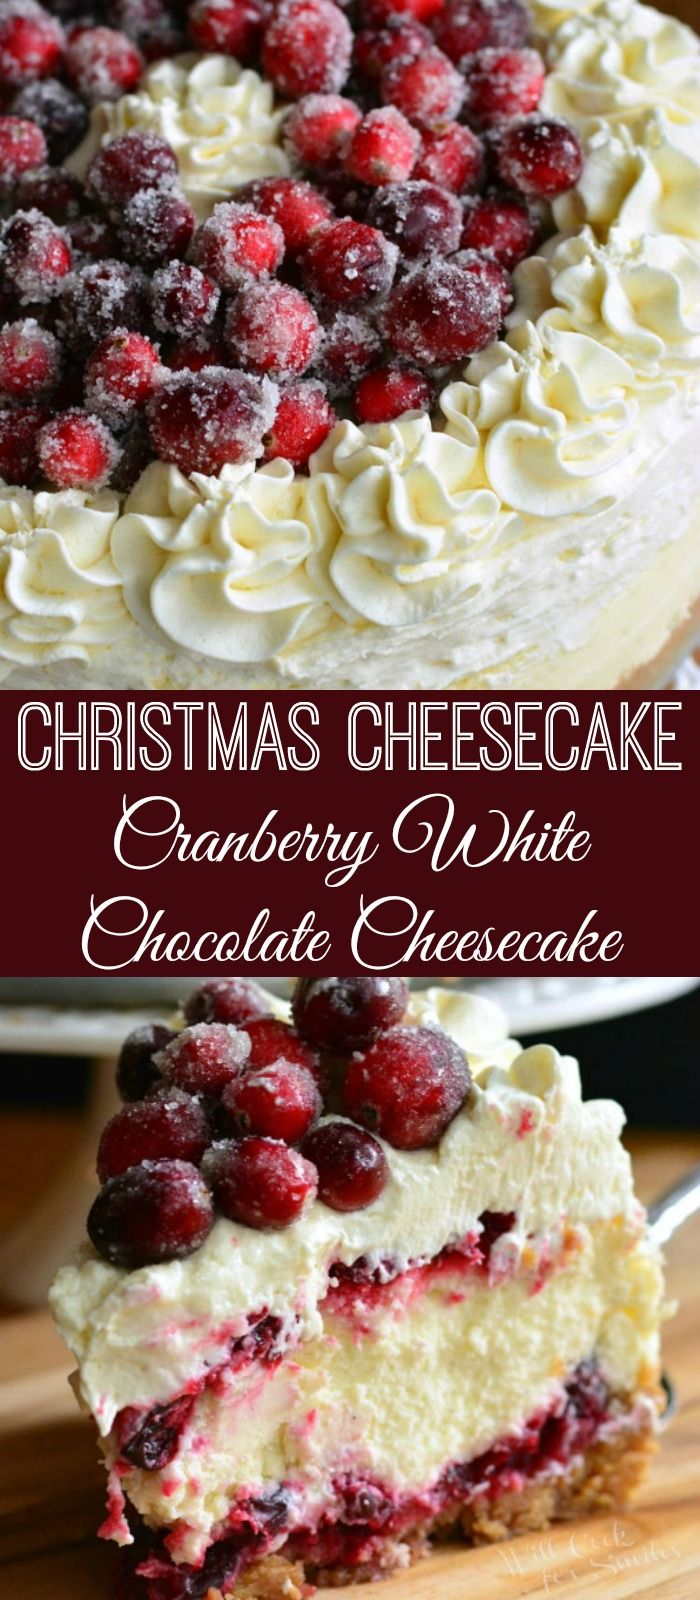 #cheesecakerecipes